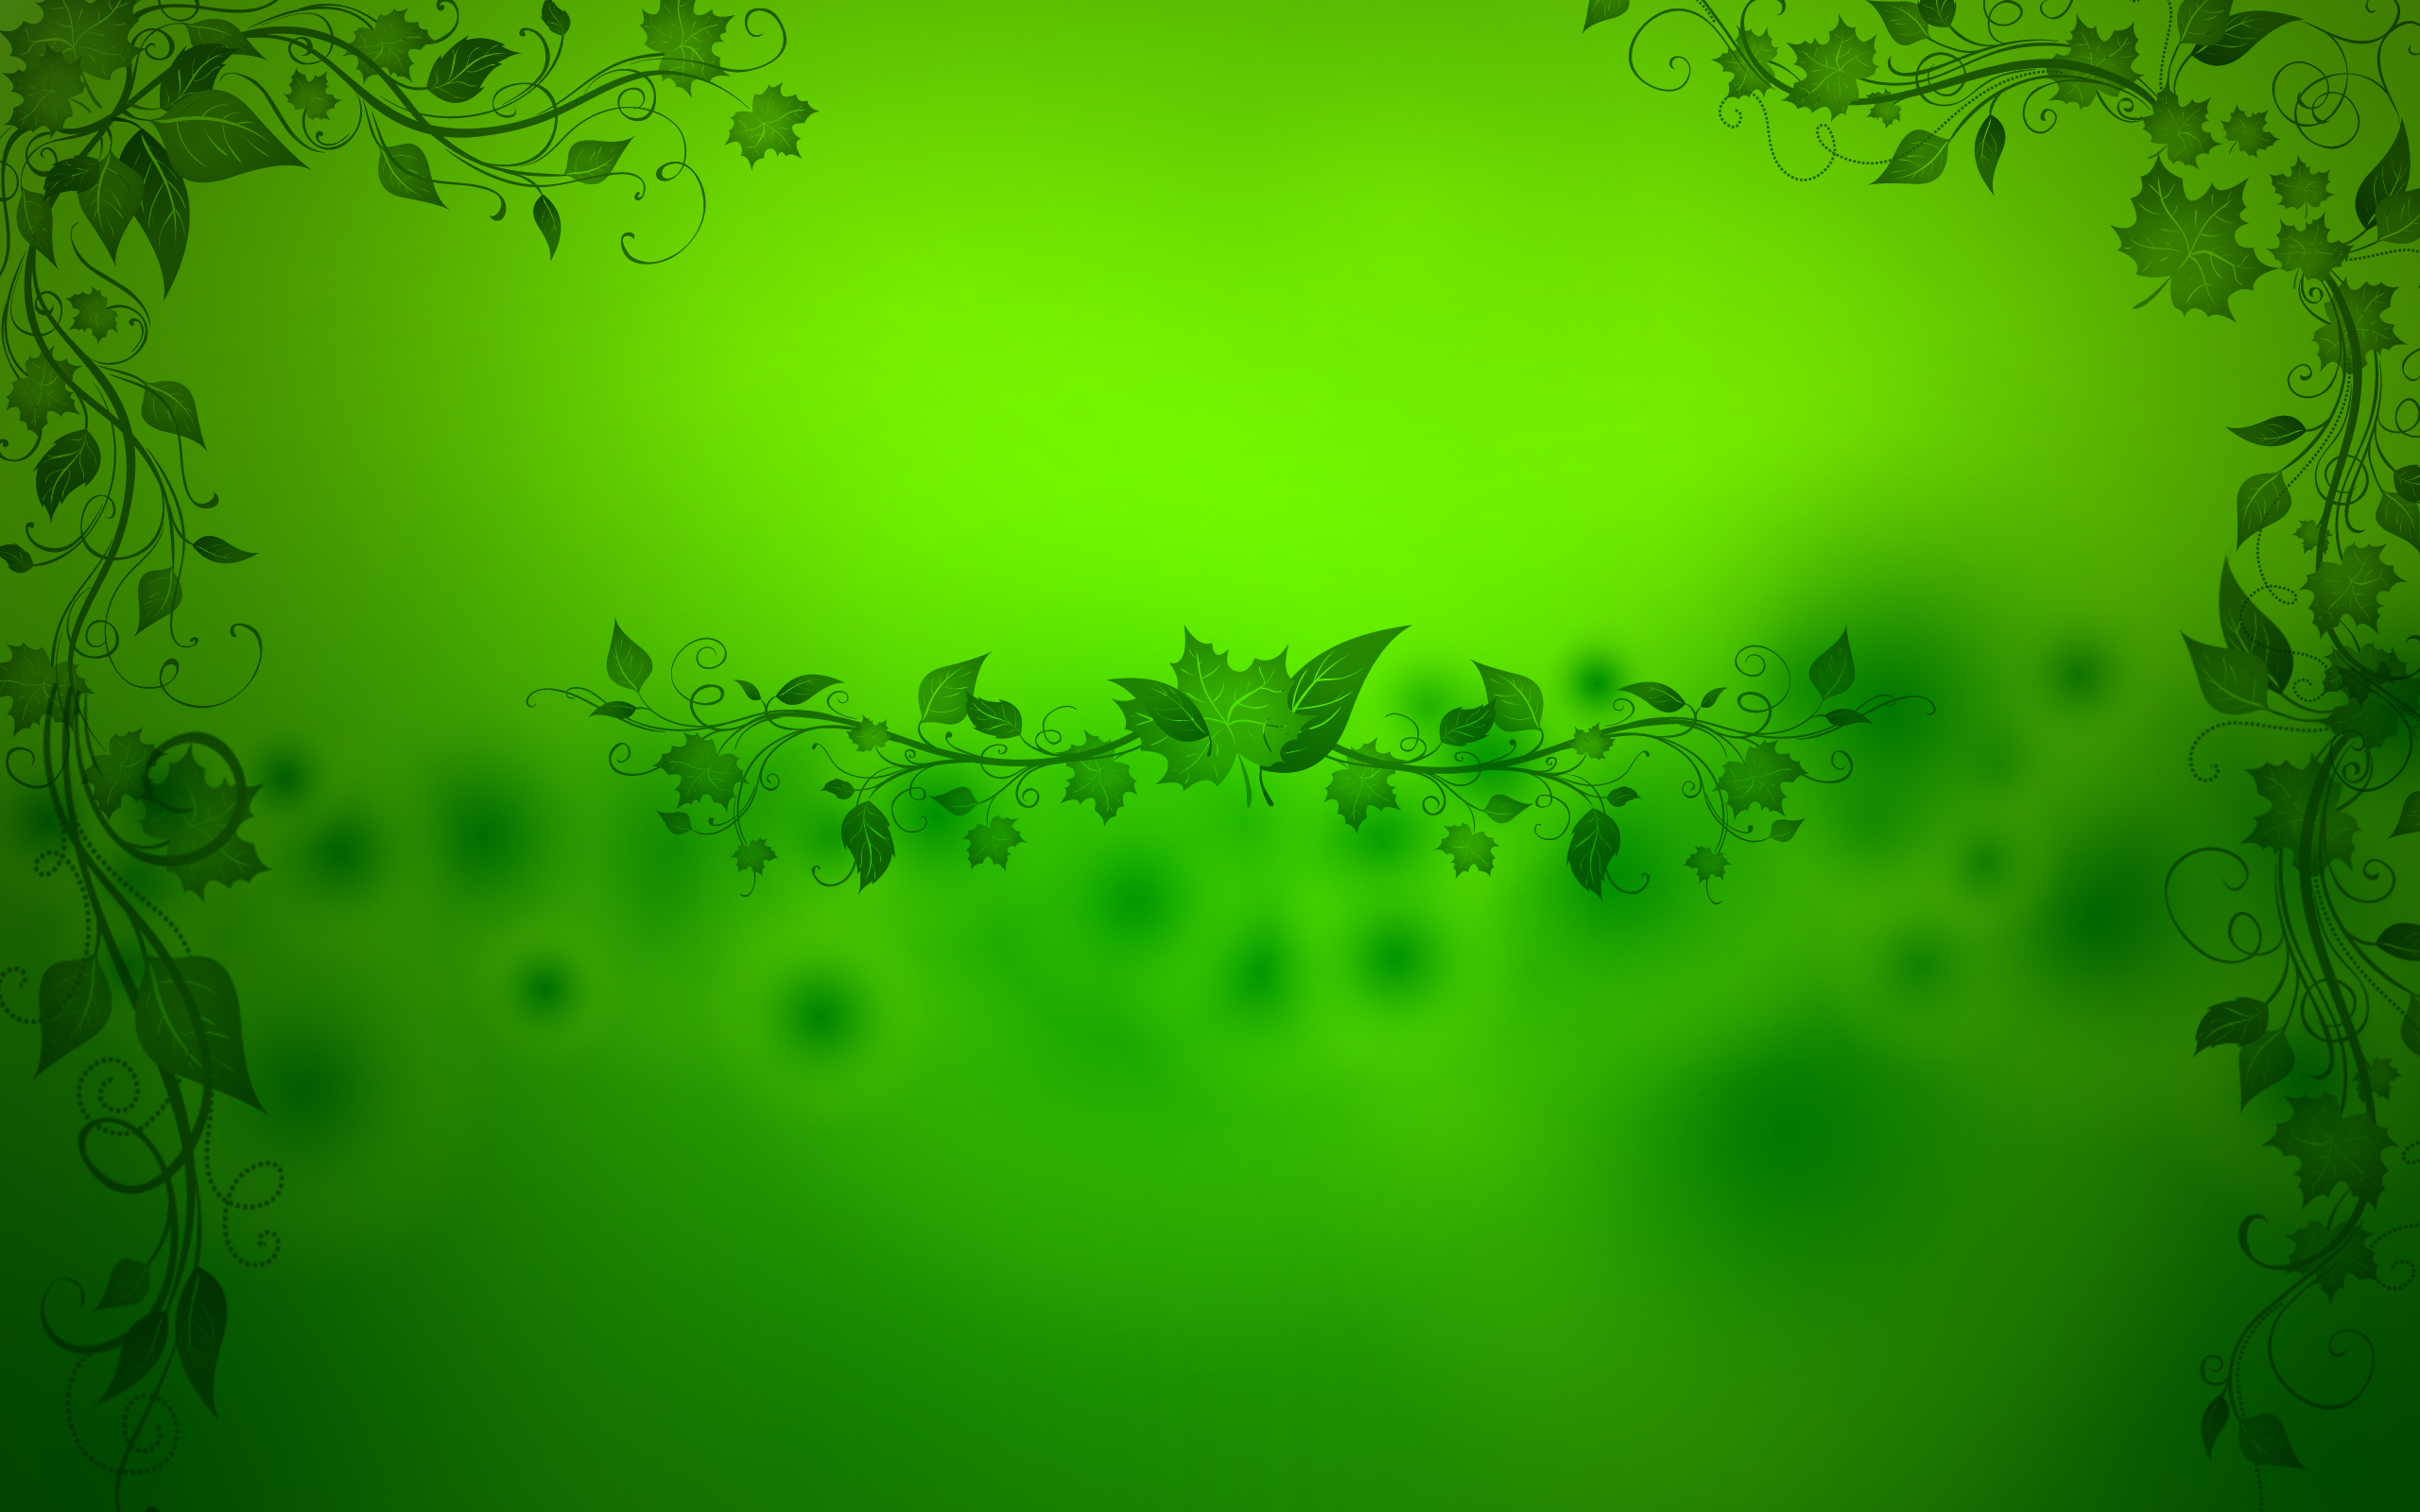 Green Desktop Wallpapers Amazing Collection